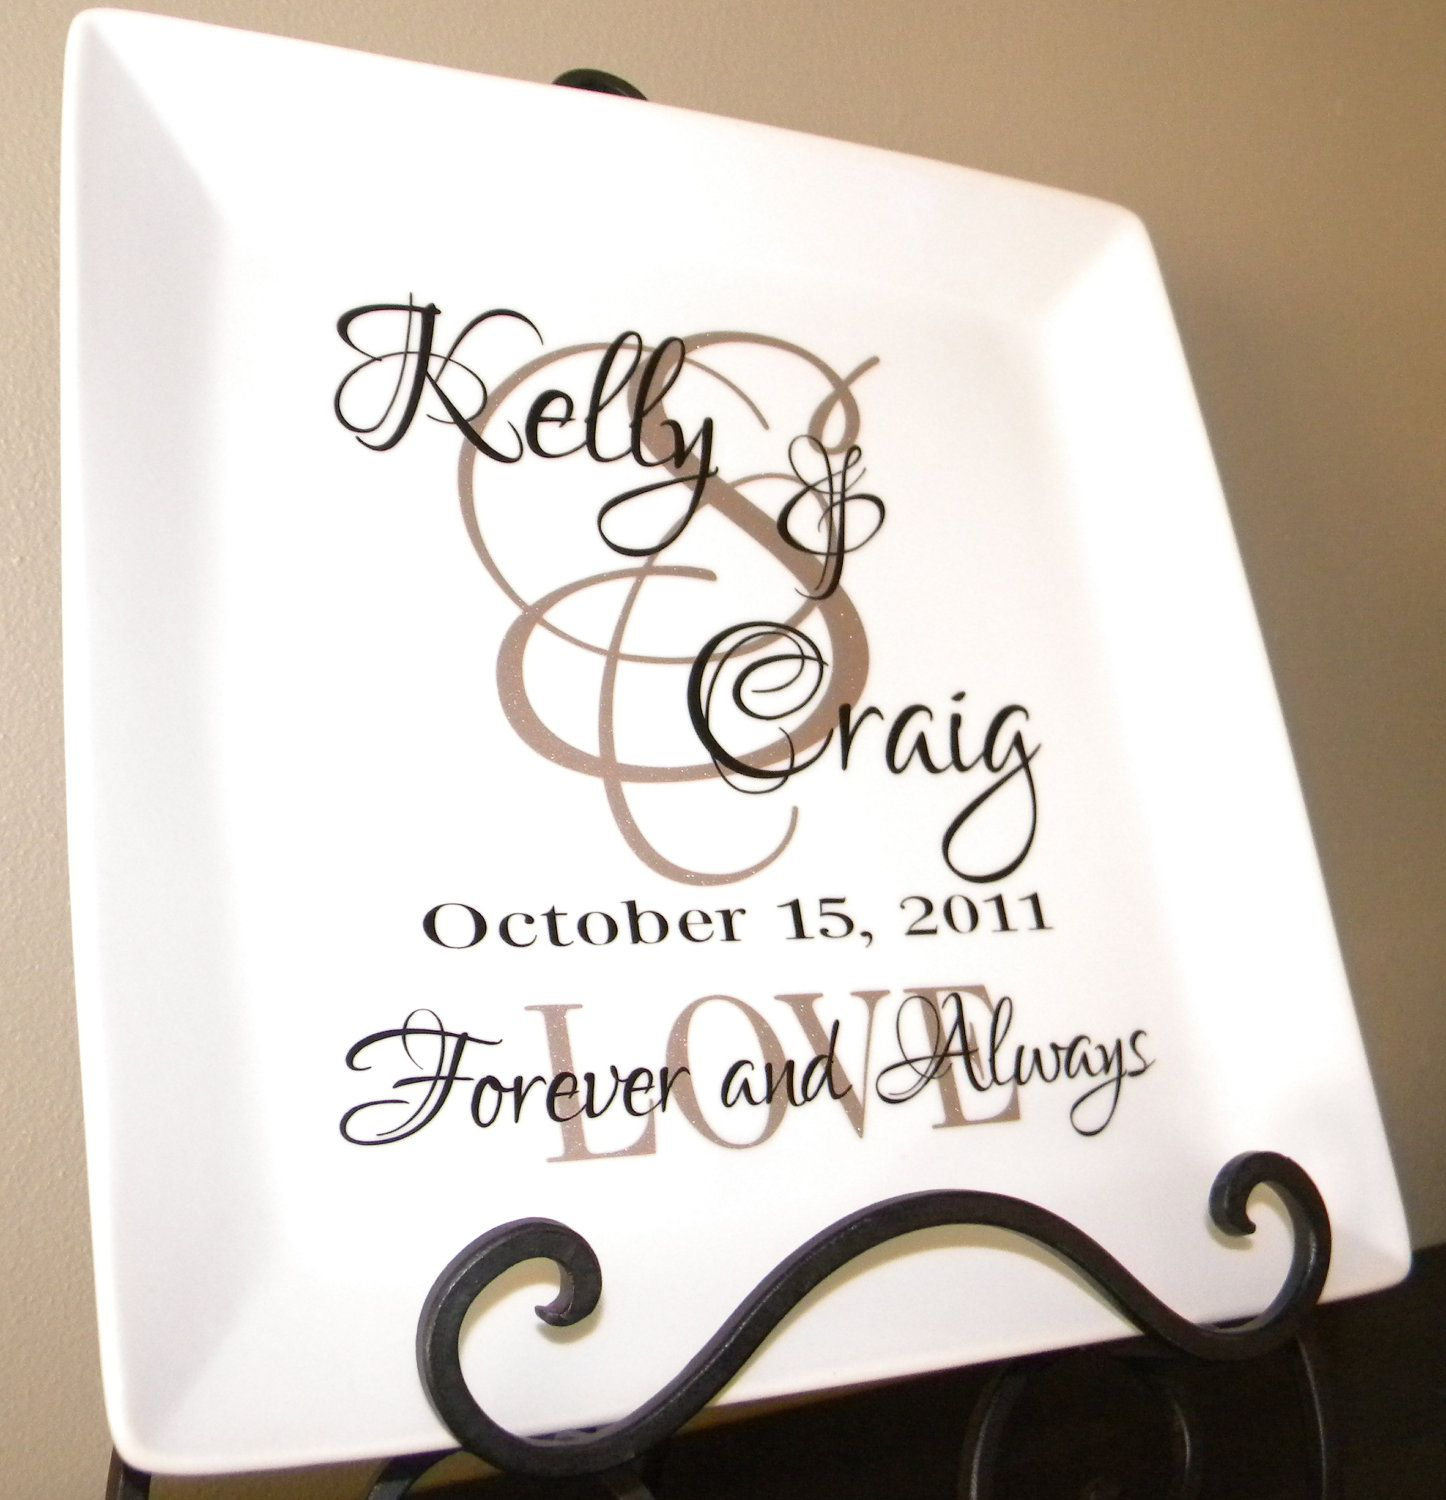 Personalized Wedding Gift Plate Anniversary Gift For Couple Etsy Personalized Wedding Gifts Wedding Plates Personalized Personalized Wedding Gifts Couple